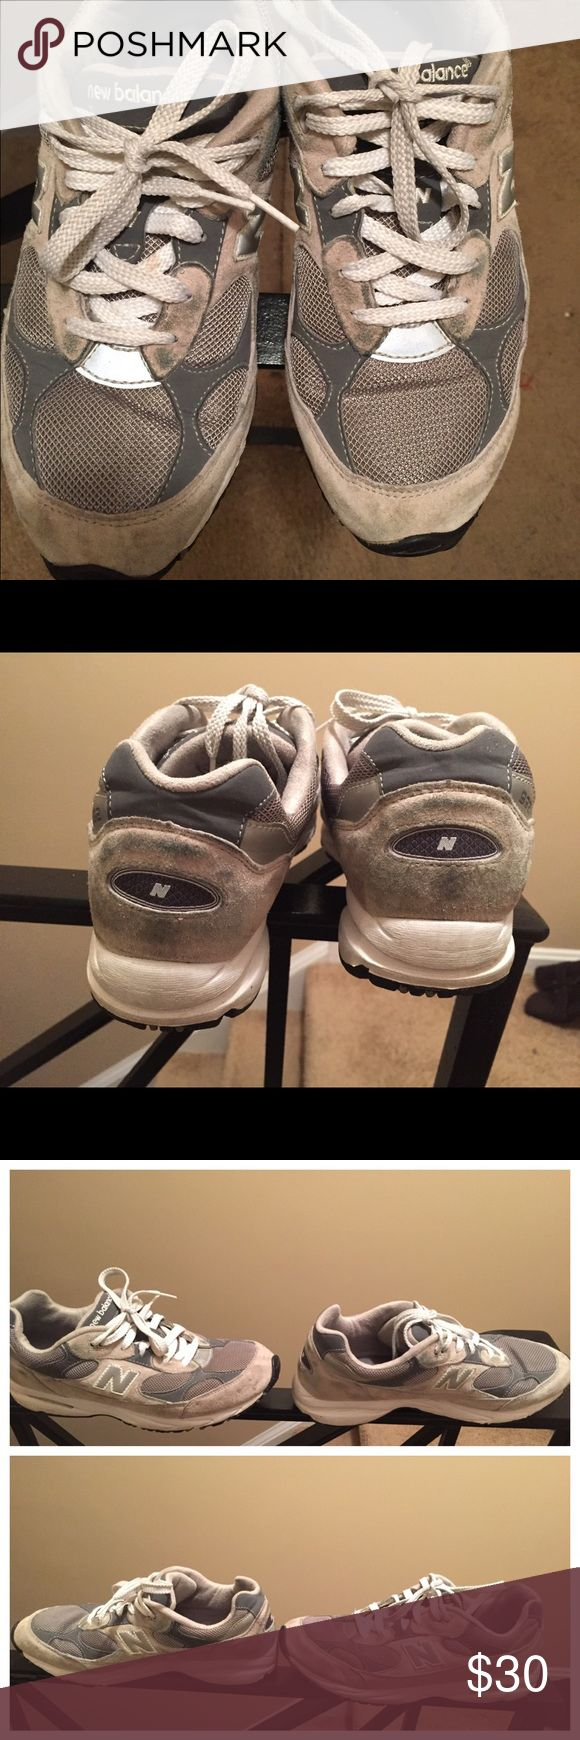 992 New Balance Sneakers size 7y (9 in women's). 992 New Balance Sneakers size 7y (9 in women's). Signs of wear. No trades New Balance Shoes Sneakers